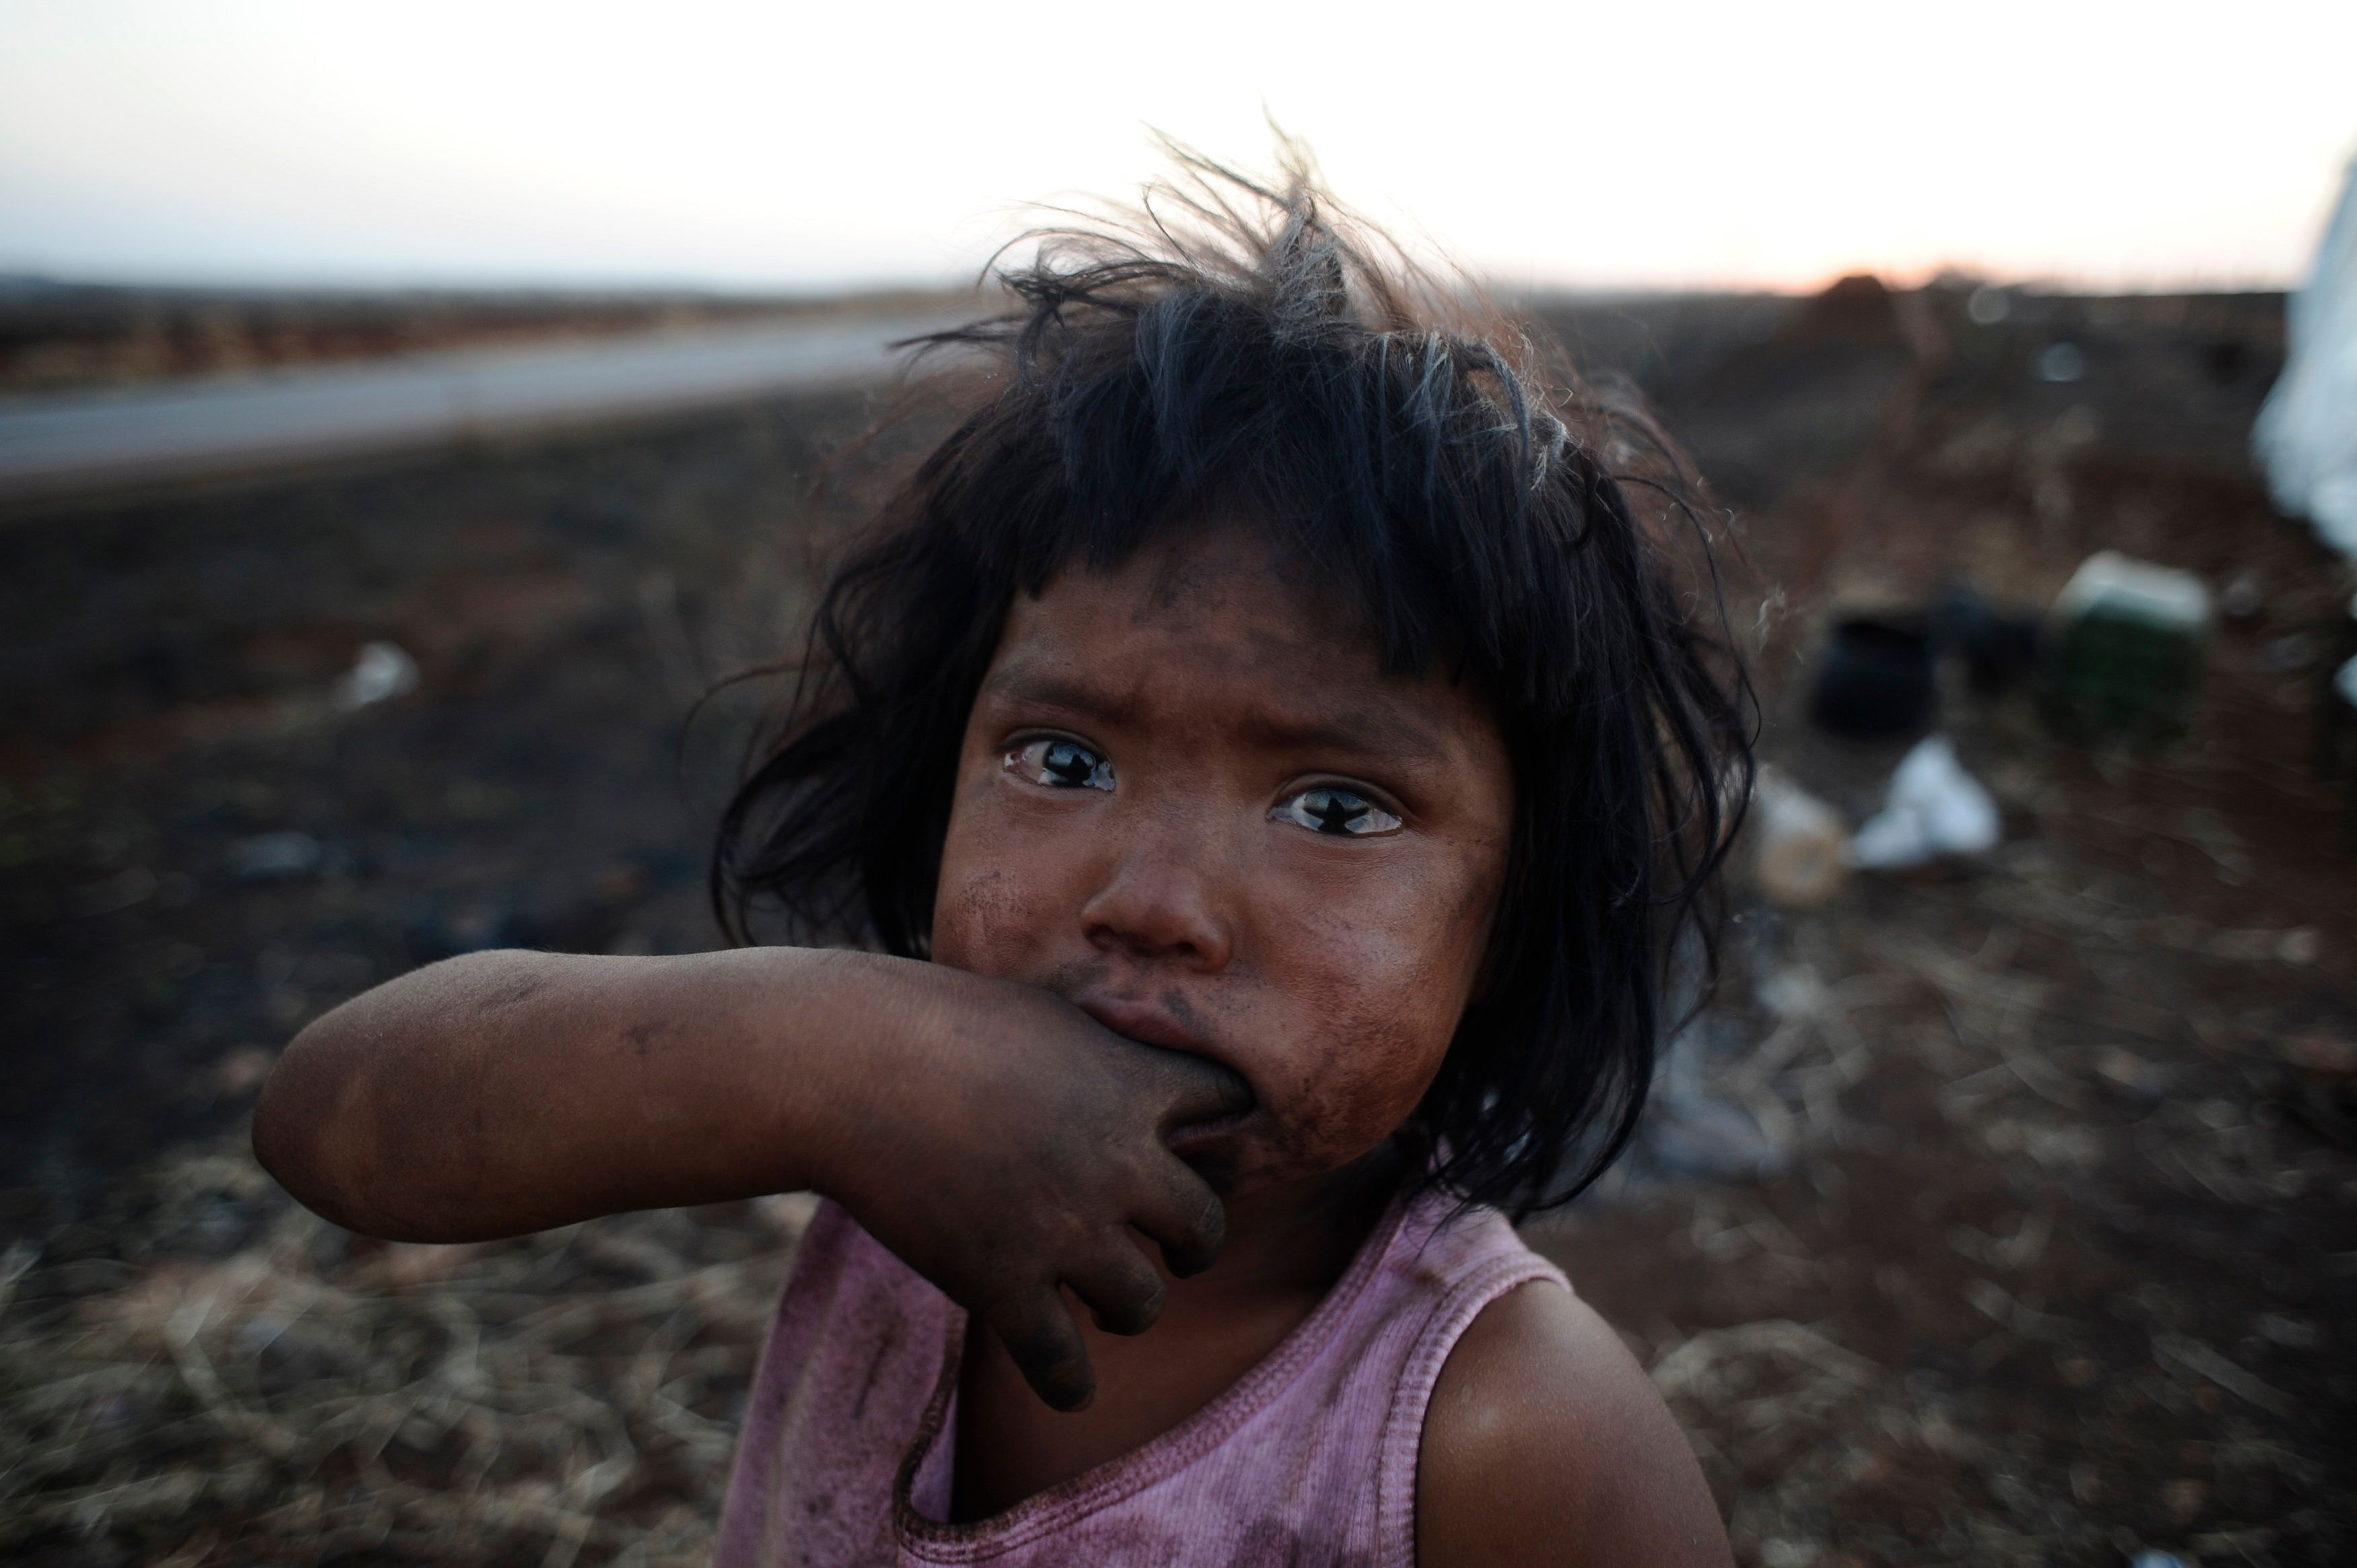 Guarani Kaiowa Indian girl Sandriely cries in front of her hut destroyed by a fire set by an unknown arsonist in their makeshift camp squeezed between highway BR 463 and their ancestral land called Tekoha Apika'y, where they have been since 2009 when they last failed to take back the land from farmers, near Dourados, Mato Grosso do Sul state, August 31, 2013. The Guarani tribe is immersed in a bloody conflict with farmers over possession of their ancestral land that has characteristics of a territorial war, in spite of Brazil's indigenous policy being considered one of the most progressive in the world. The conflict highlights the risks being run by an agricultural superpower whose leftist government is trying to sort out centuries of ethnic disputes over ownership of the land from which much of the nation's wealth sprouts. Picture taken August 31, 2013. REUTERS/Lunae Parracho (BRAZIL - Tags: POLITICS ENVIRONMENT SOCIETY CIVIL UNREST TPX IMAGES OF THE DAY)  ATTENTION EDITORS: PICTURE 20 OF 30 FOR PACKAGE 'BRAZIL'S ANCESTRAL LAND WAR'. TO FIND ALL IMAGES SEARCH 'GUARANI TRIBE'